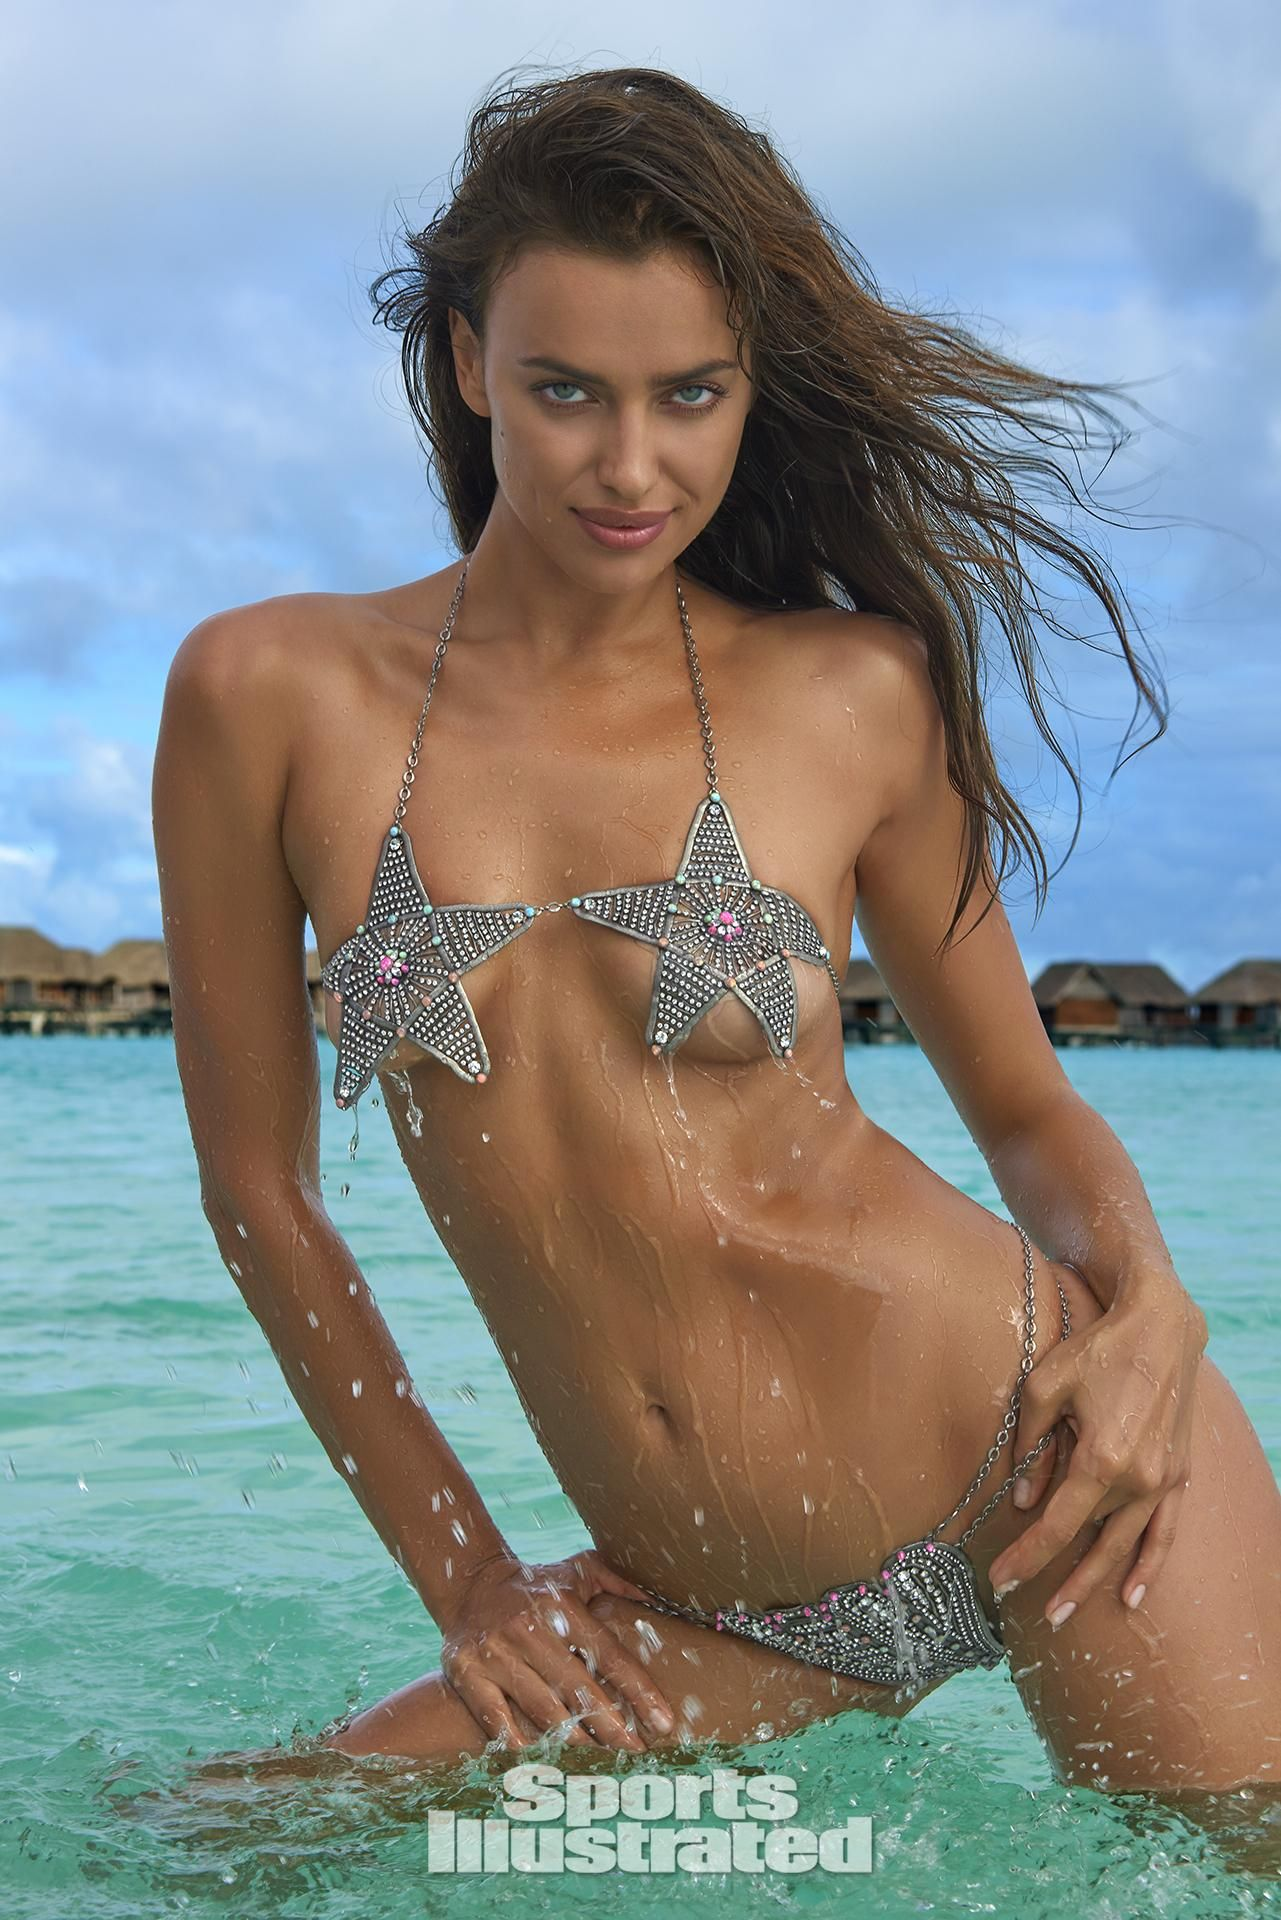 640f744d10 Irina Shayk was photographed by Yu Tsai in The Islands Of Tahiti. Swimsuit  by Lionette By Noa Sade.